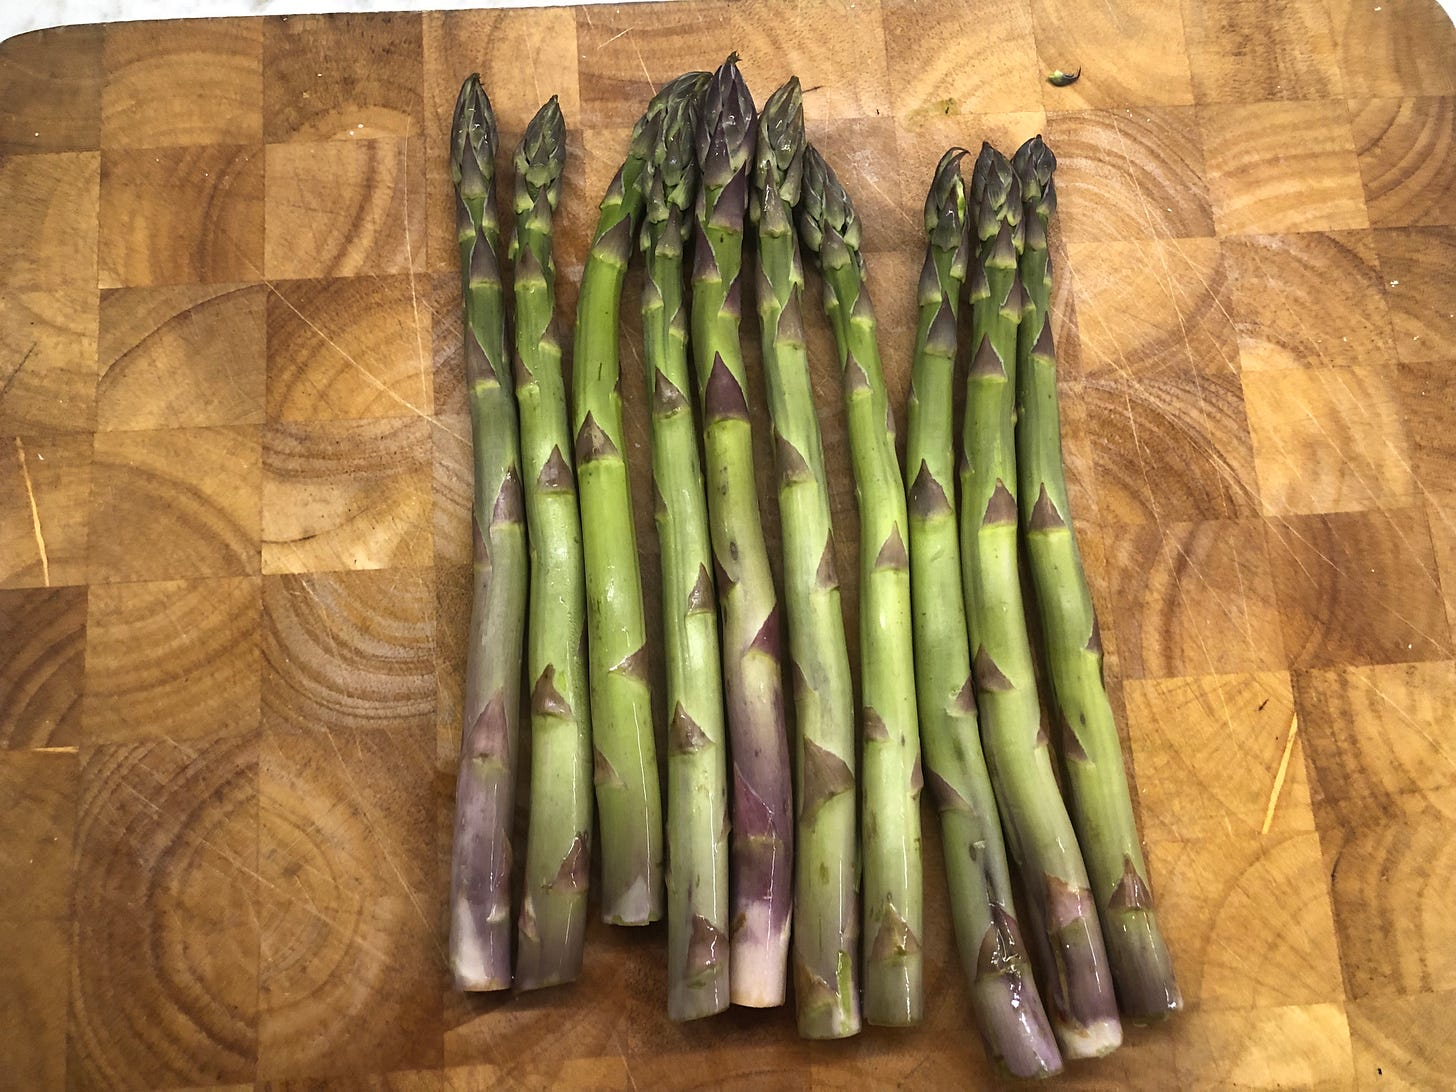 Ten spears of asparagus lying on a cutting board